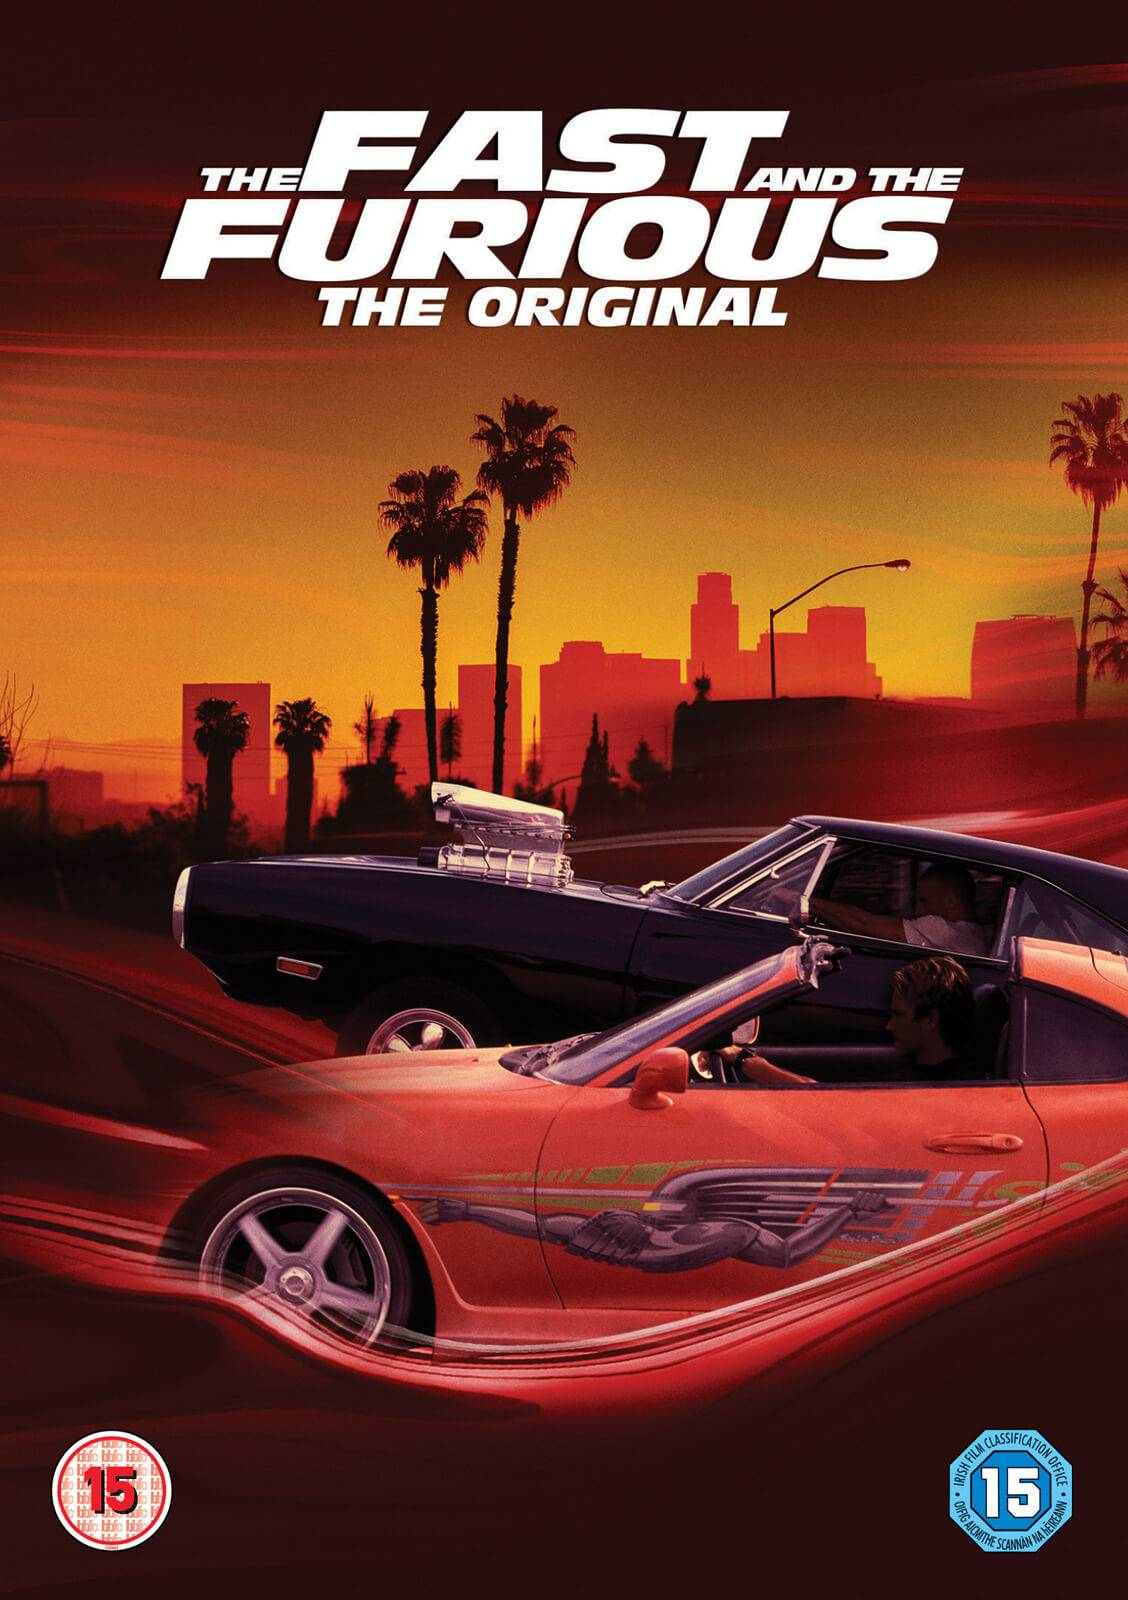 Universal Pictures The Fast and the Furious (Includes UltraViolet Copy)